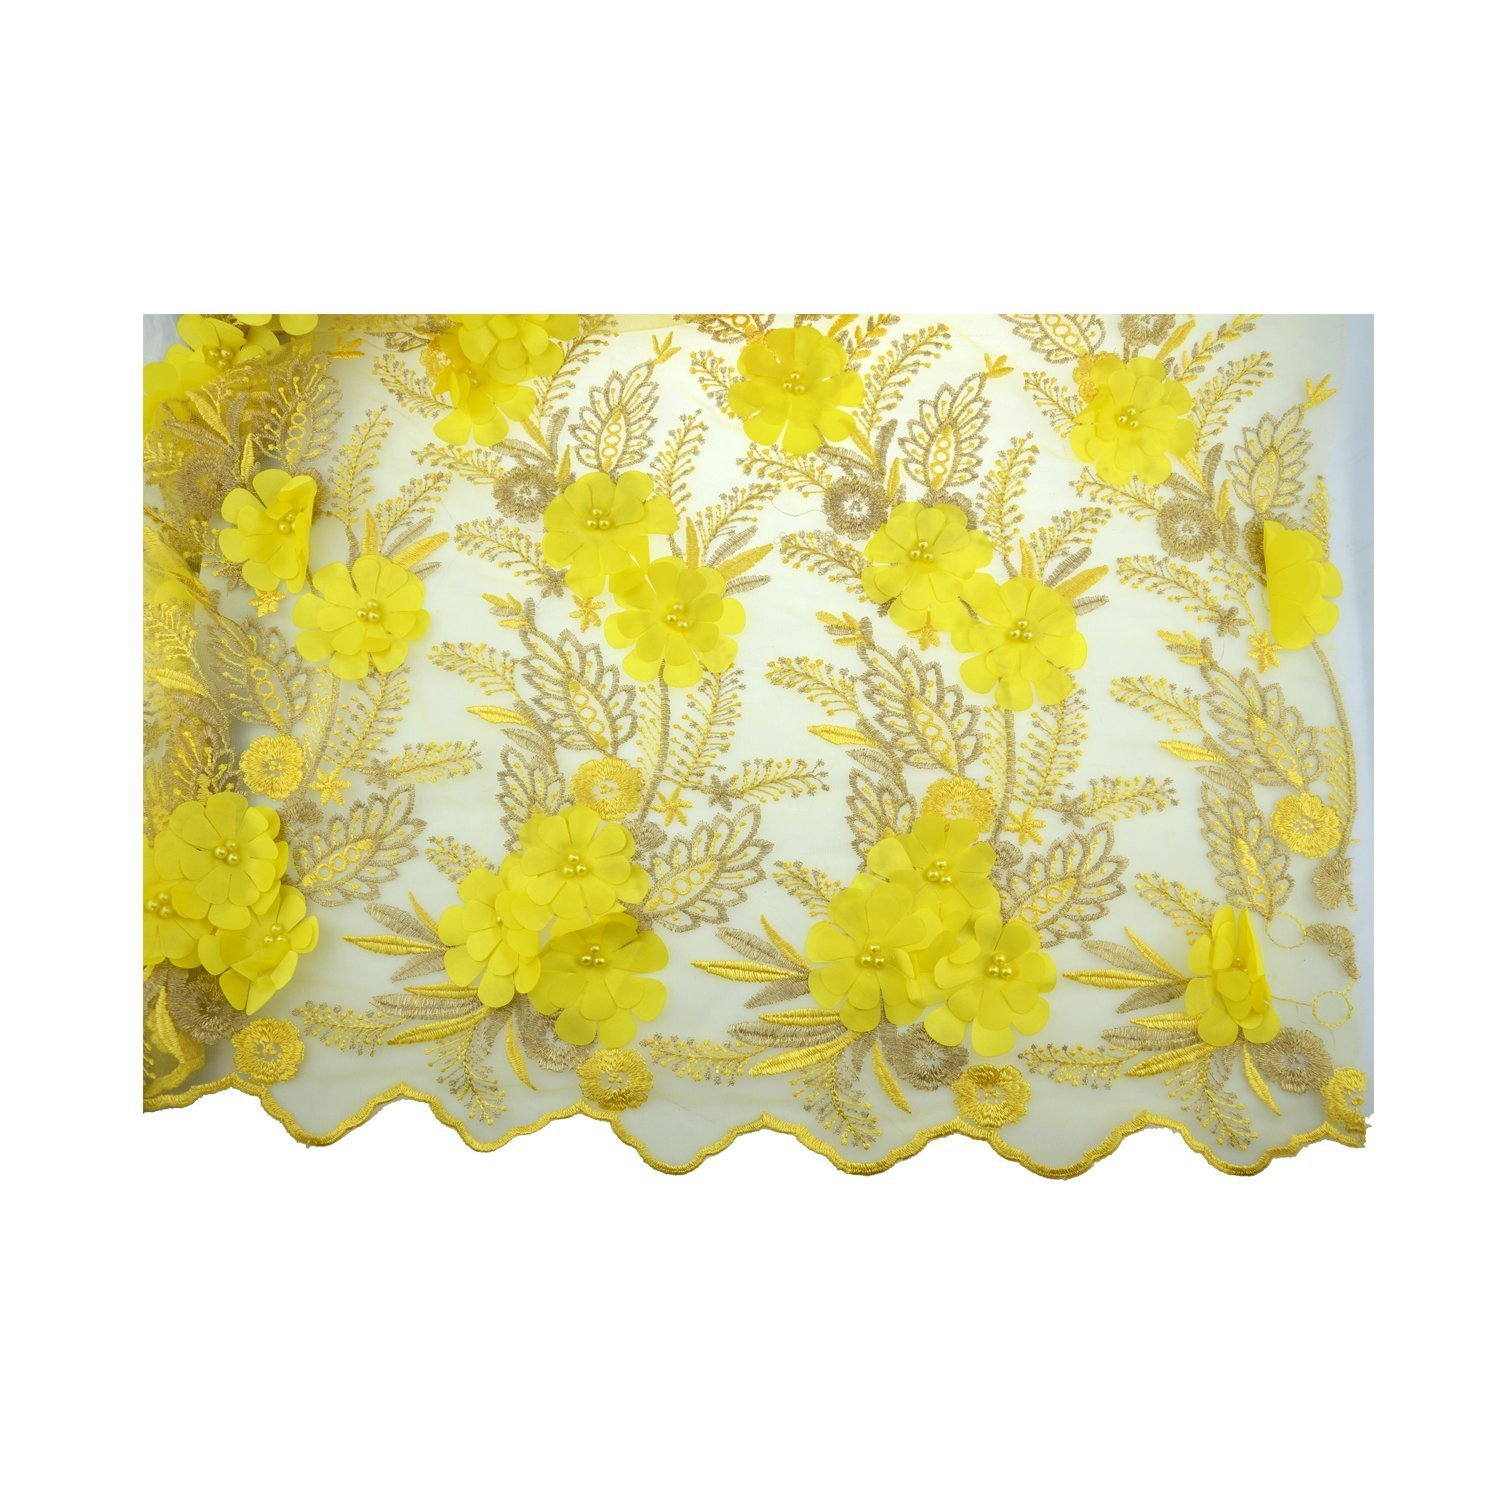 LaceQin 5 Yards 3D Swiss Yarn Lace Wedding African Lace Fabric French Royal Lace Fabric (Yellow)